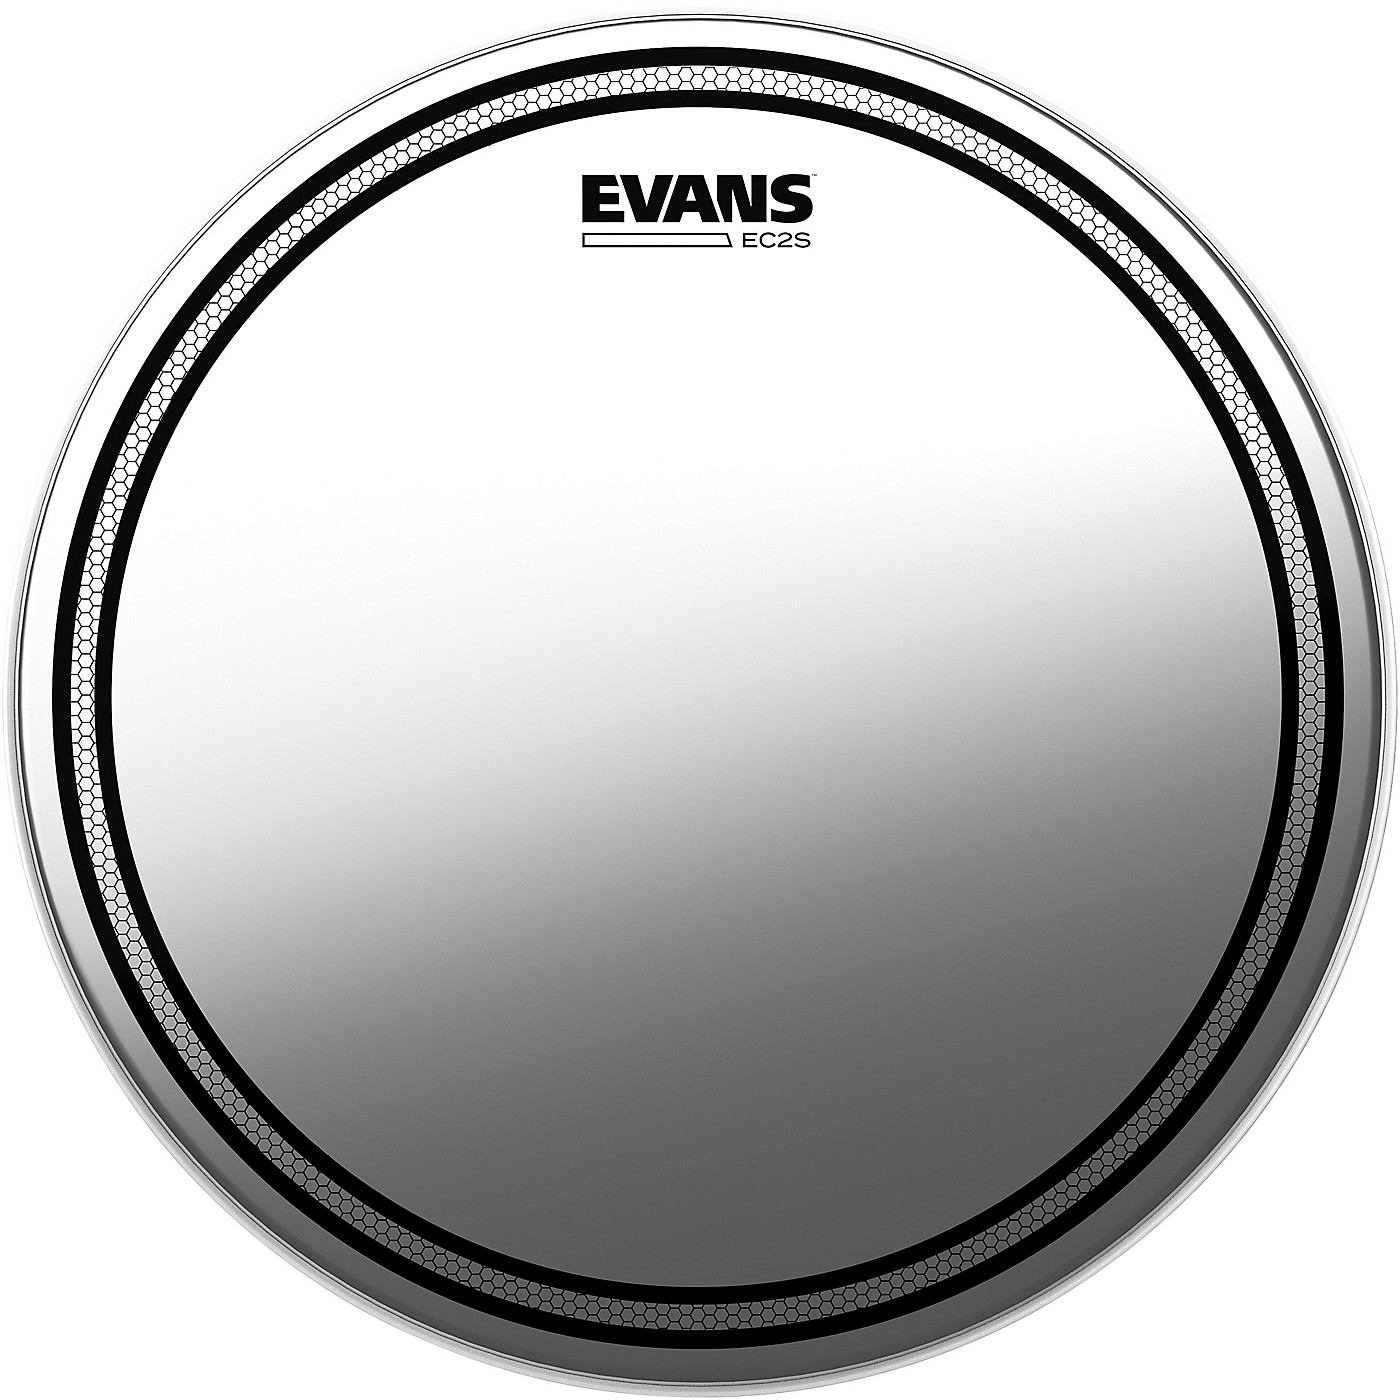 Evans EC2S Frosted Drumhead thumbnail